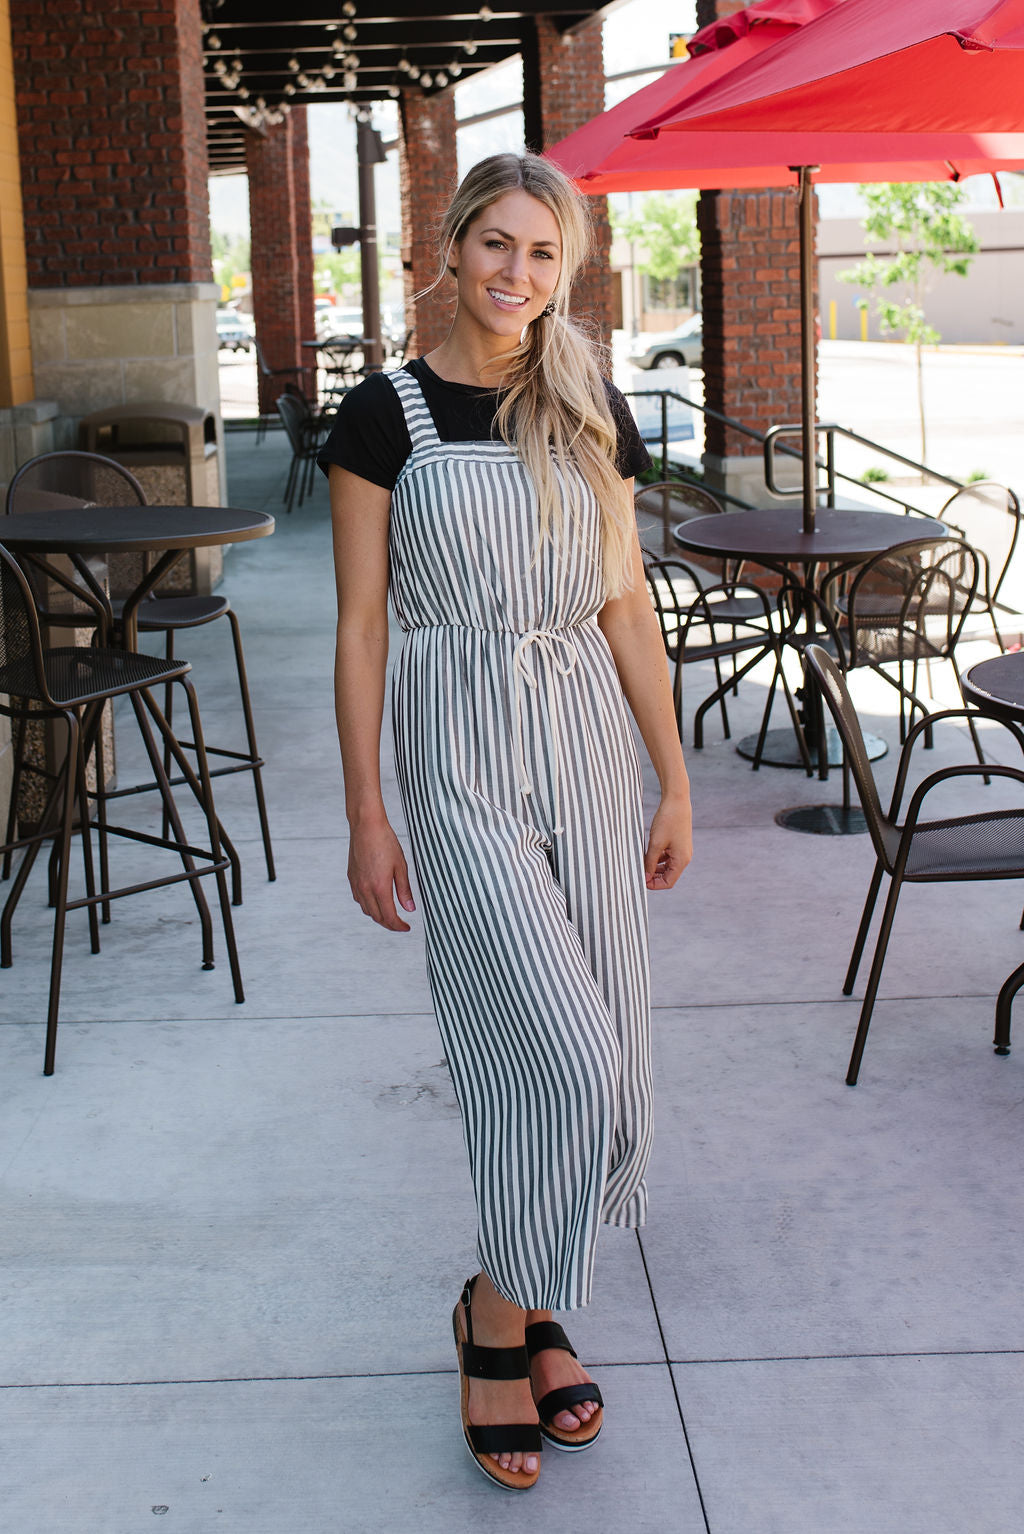 EILEEN DRAWSTRING JUMPER IN GREY AND WHITE STRIPES